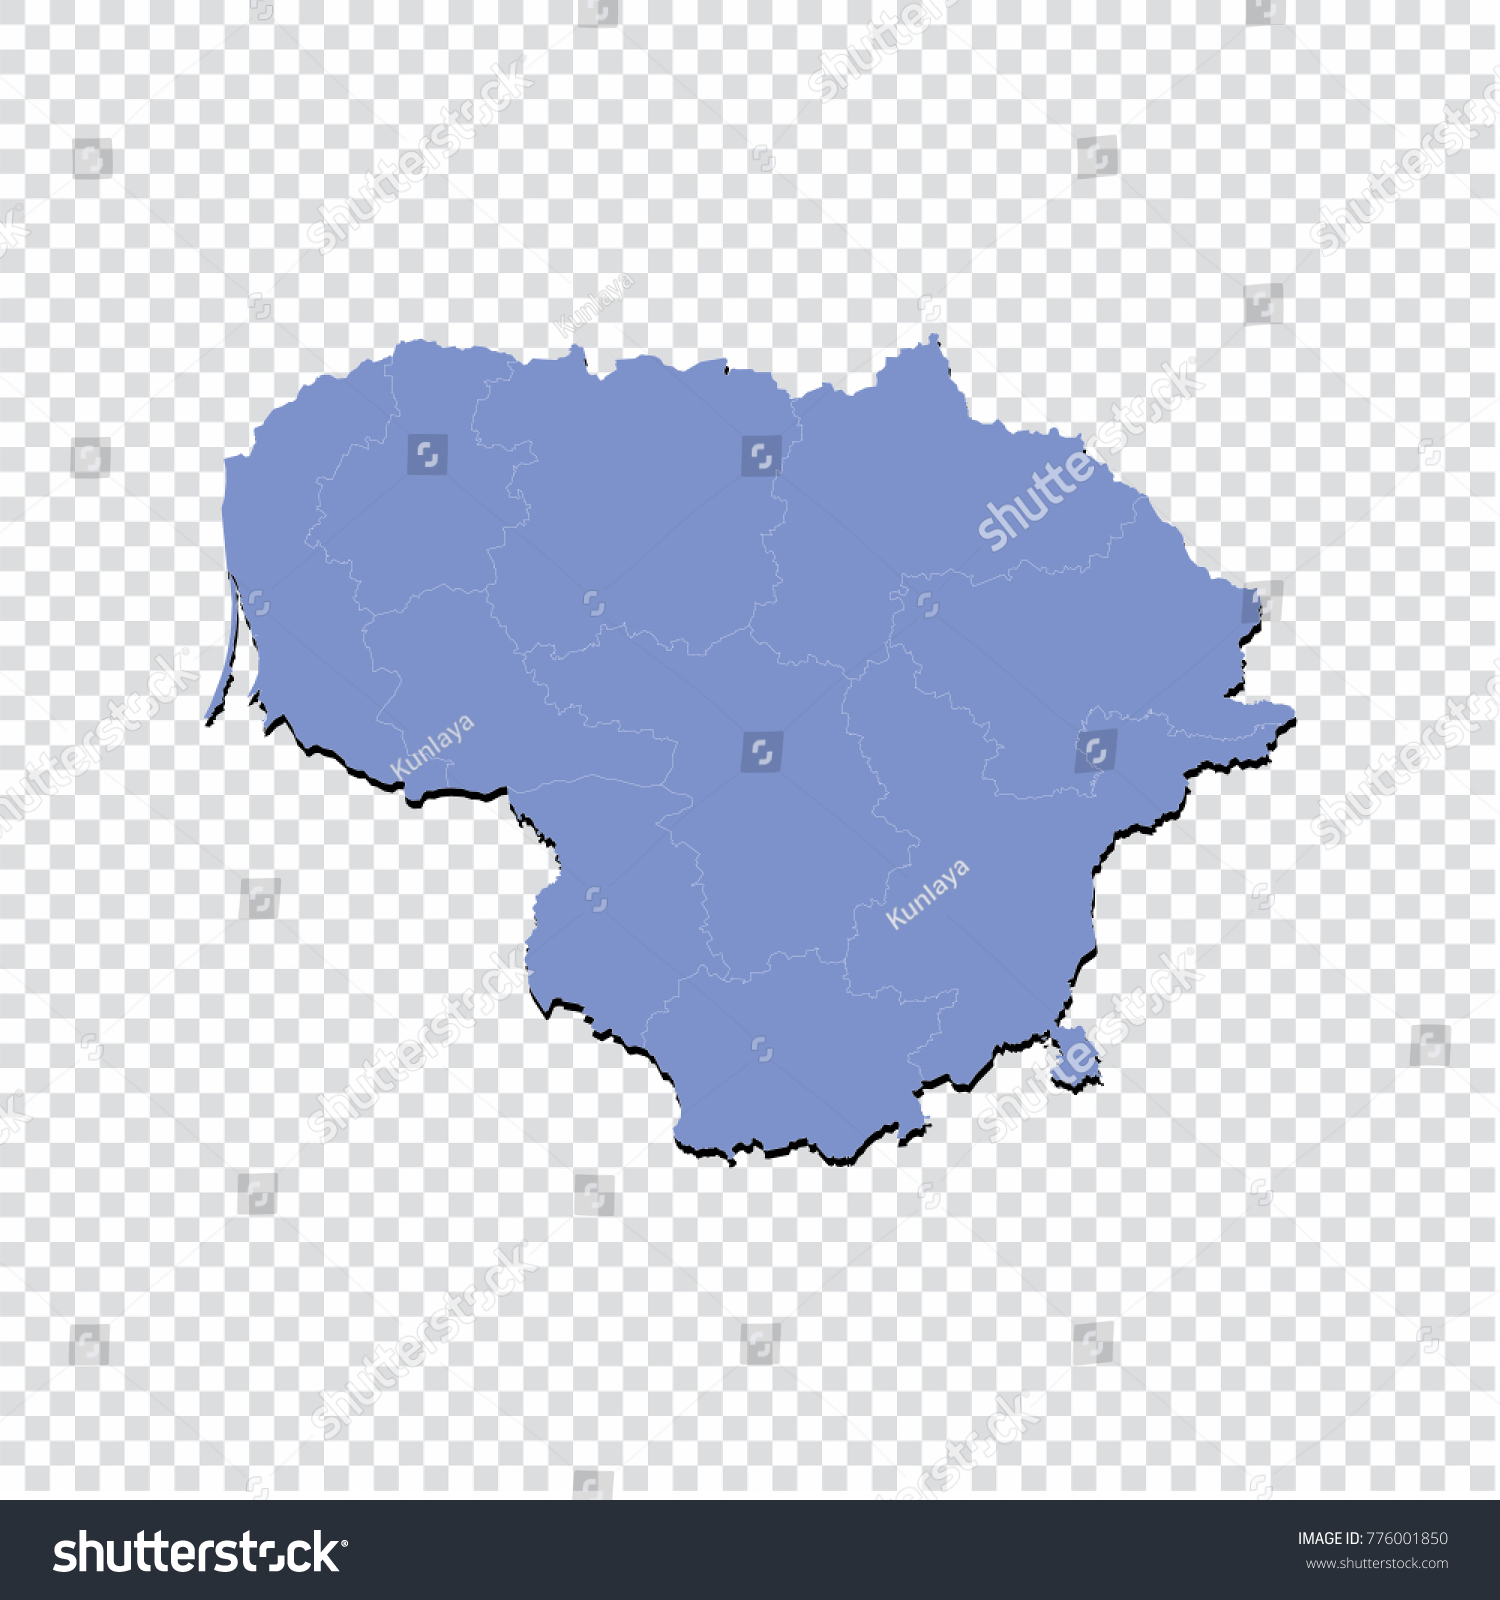 Lithuania Map Stock Vector Google Maps Without Labels Map And - Lithuania map vector